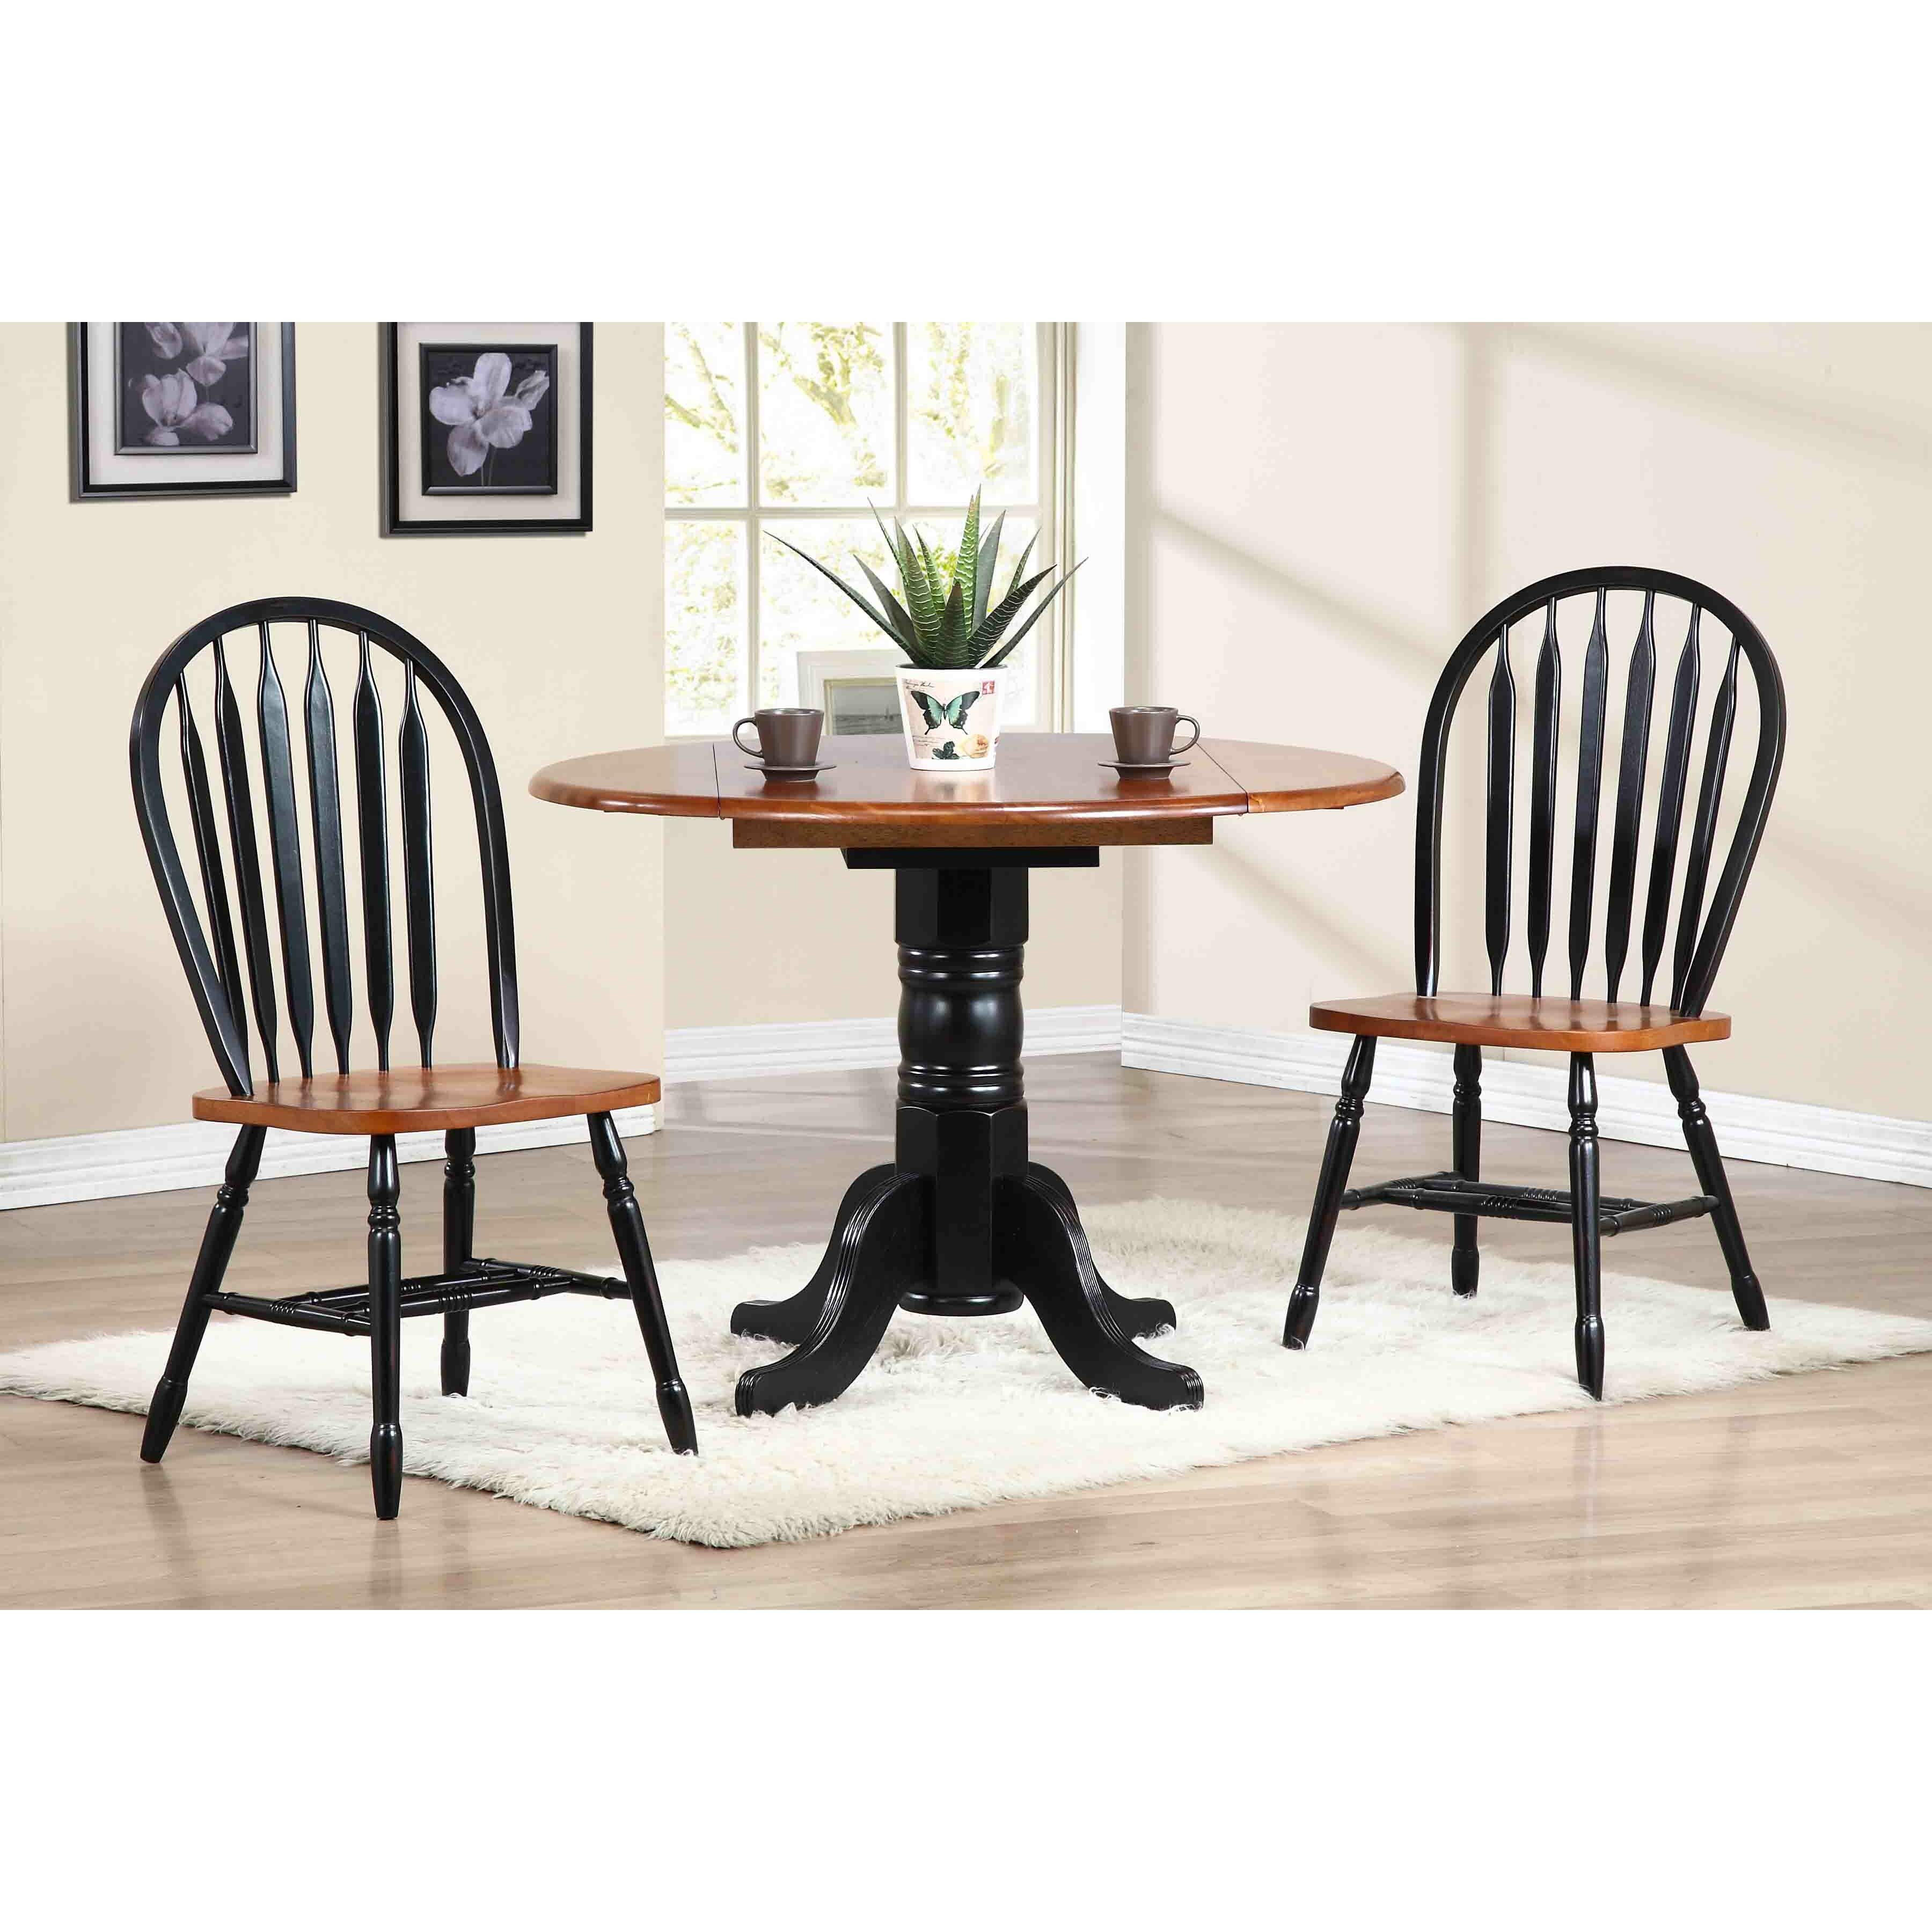 Loon Peak Banksville Extendable Dining Table amp Reviews  : Loon Peak25C225AE Banksville Extendable Dining Table from www.wayfair.com size 3600 x 3600 jpeg 516kB